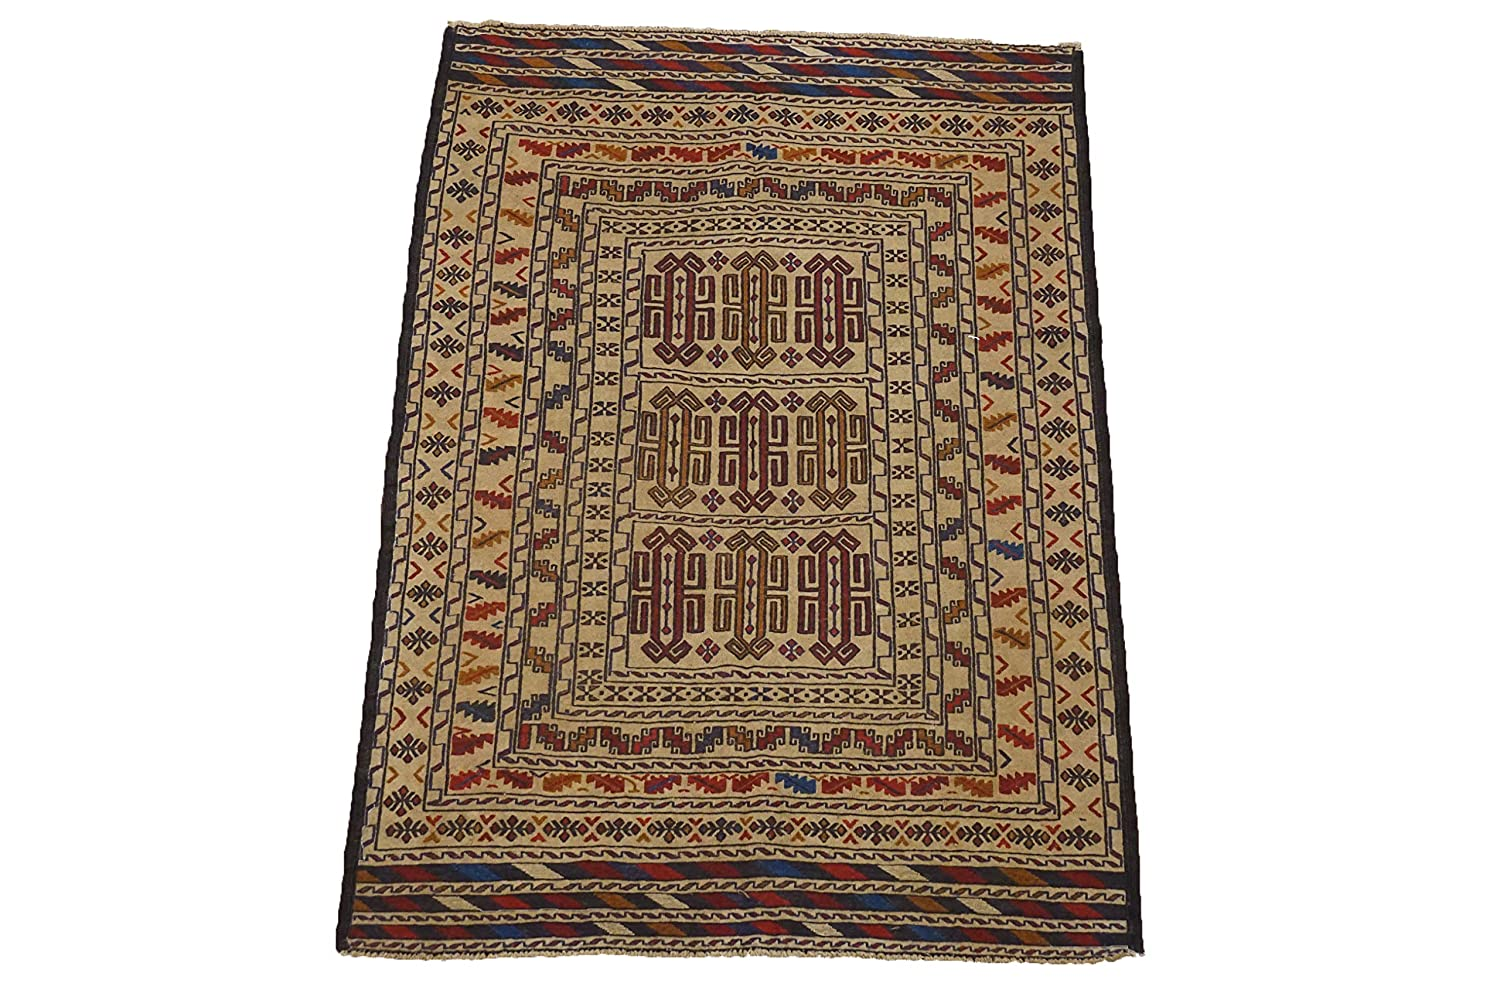 Amazon.com: 4X6 Afghan Sculpted Tribal Hand-Knotted Wool Carpet Oriental Area Rug (4 x 6.5)(F): Kitchen & Dining